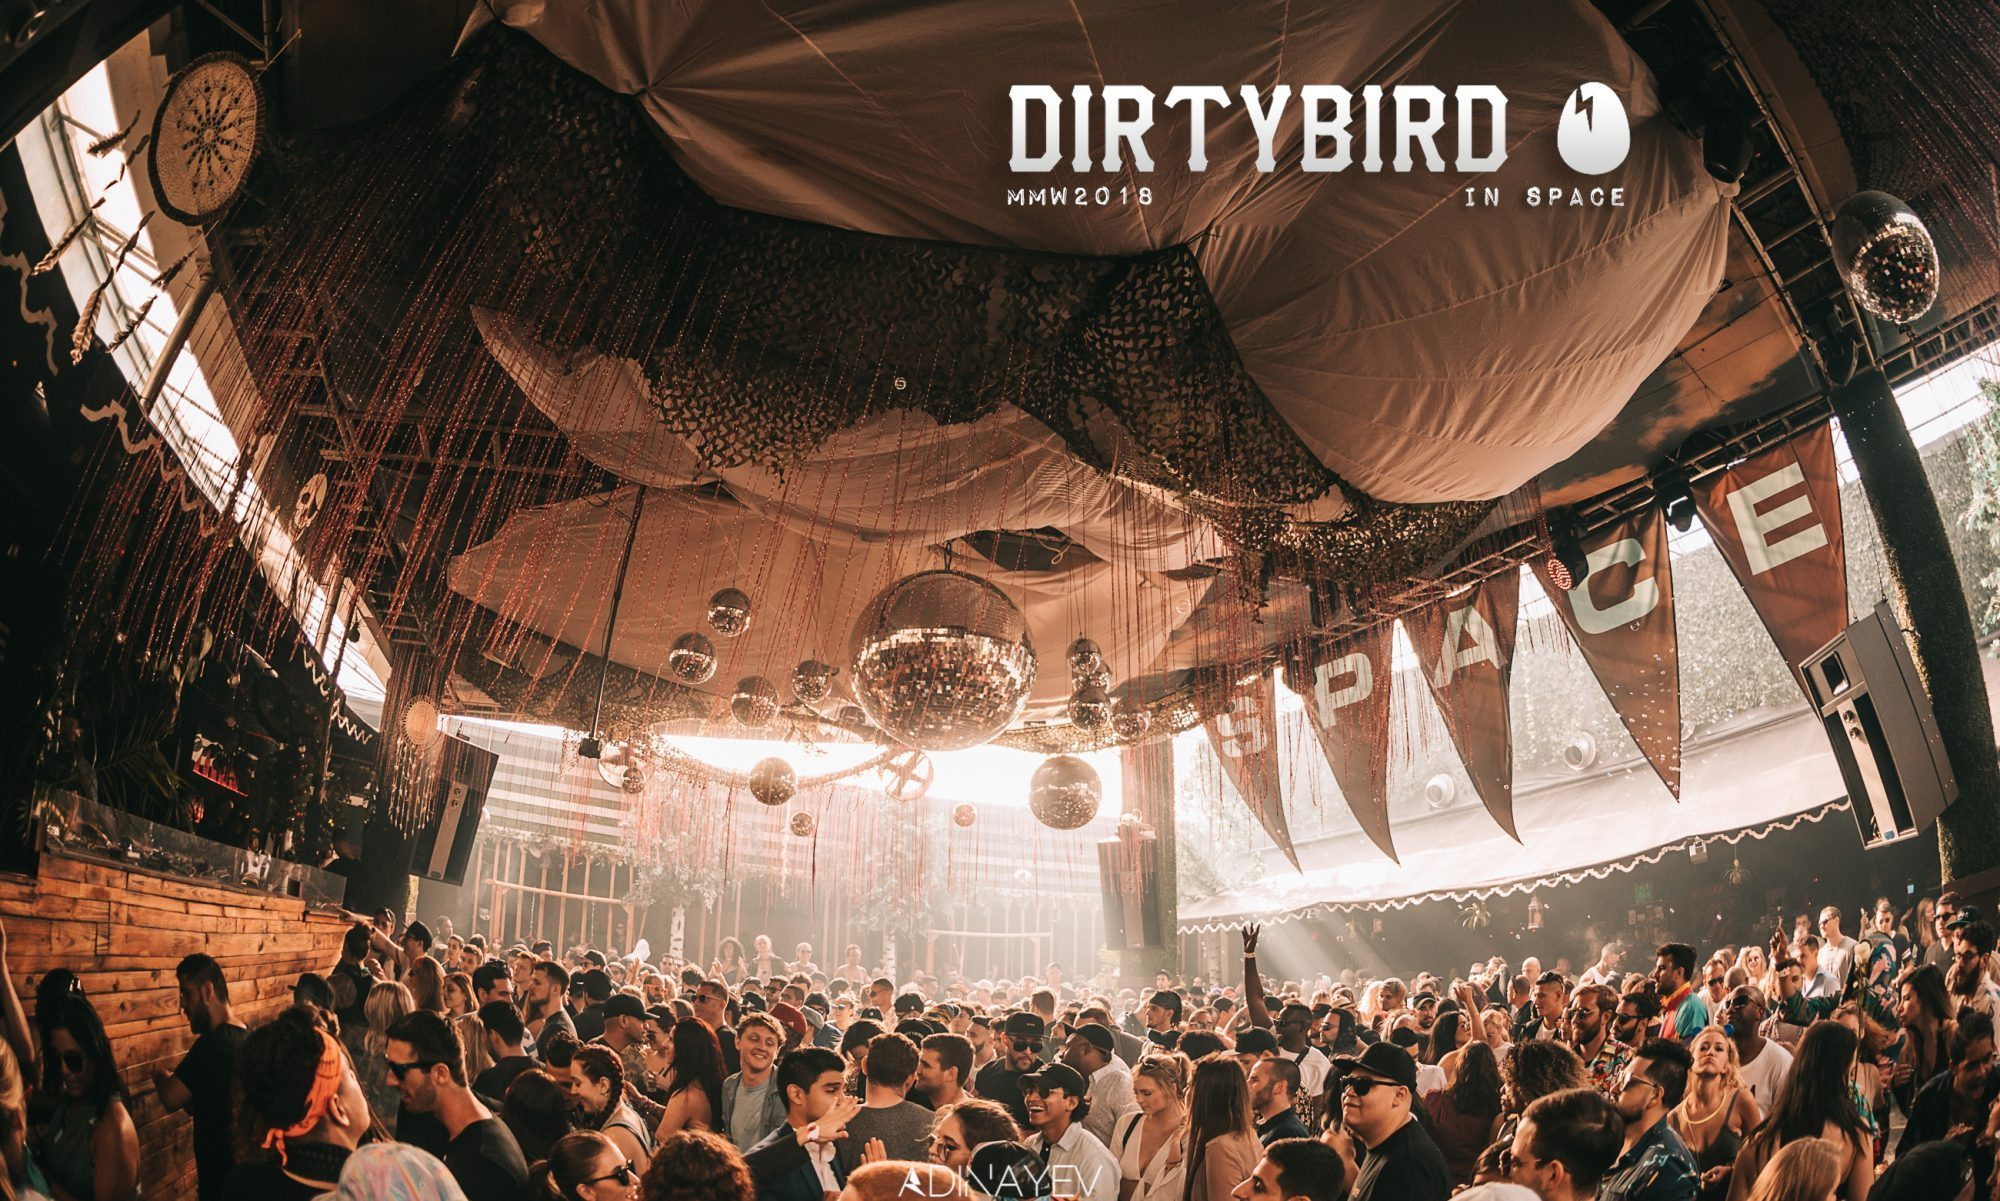 Shake Your Tail Feather this MMW with Dirtybird Players at Space